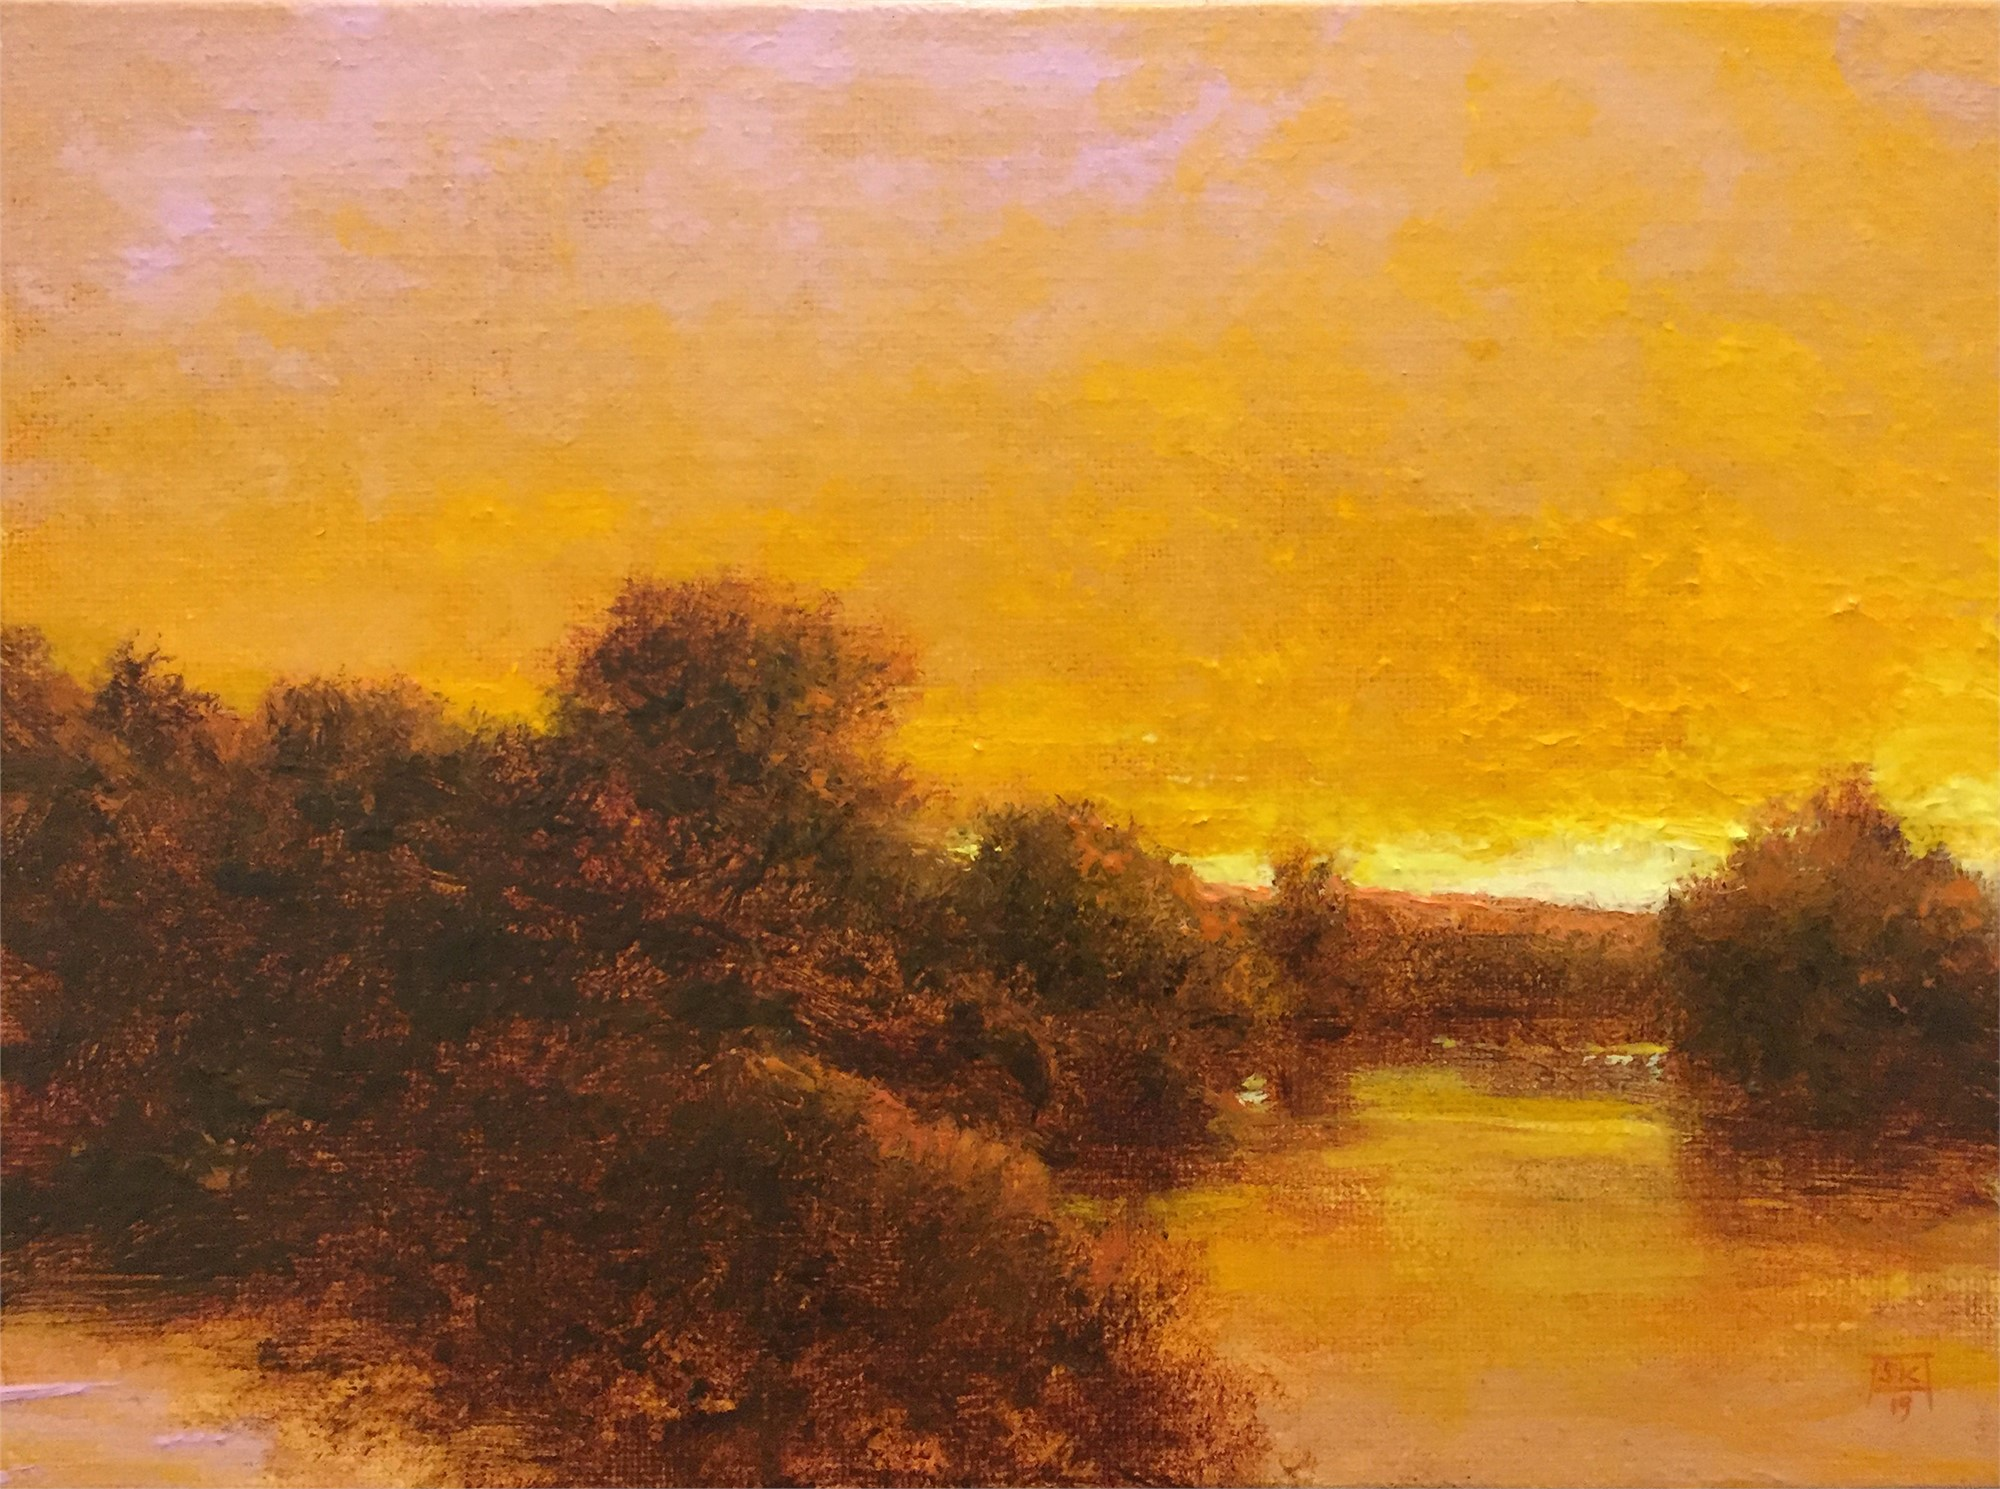 Golden Evening, Grand River by Shawn Krueger